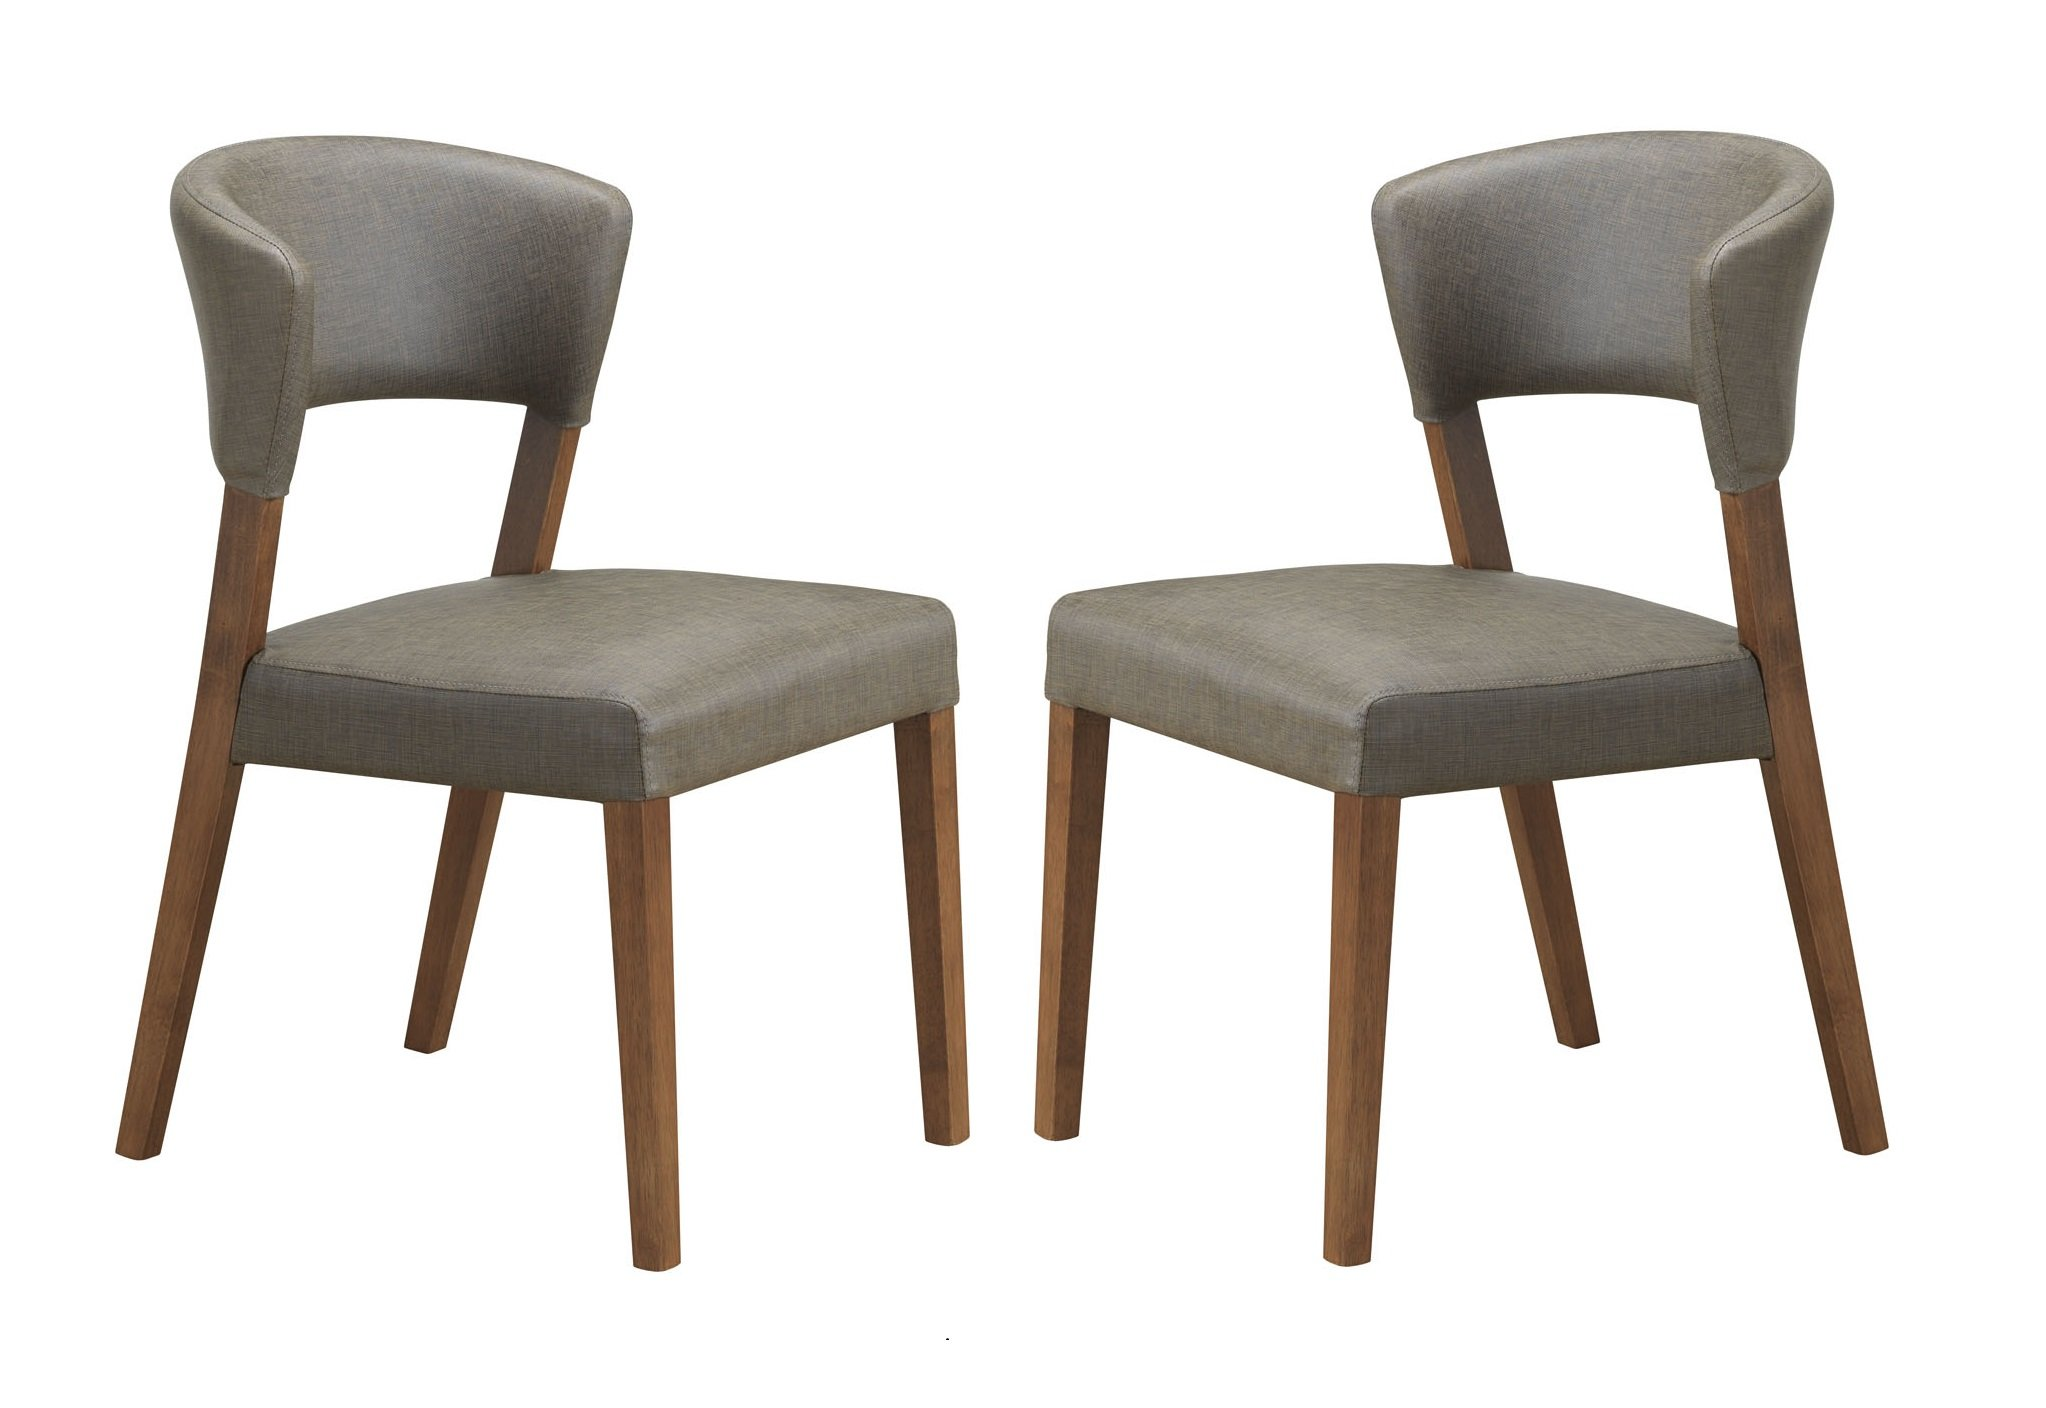 Grey Dining Room Chairs: Cheap Grey Dining Room Chairs, Find Grey Dining Room